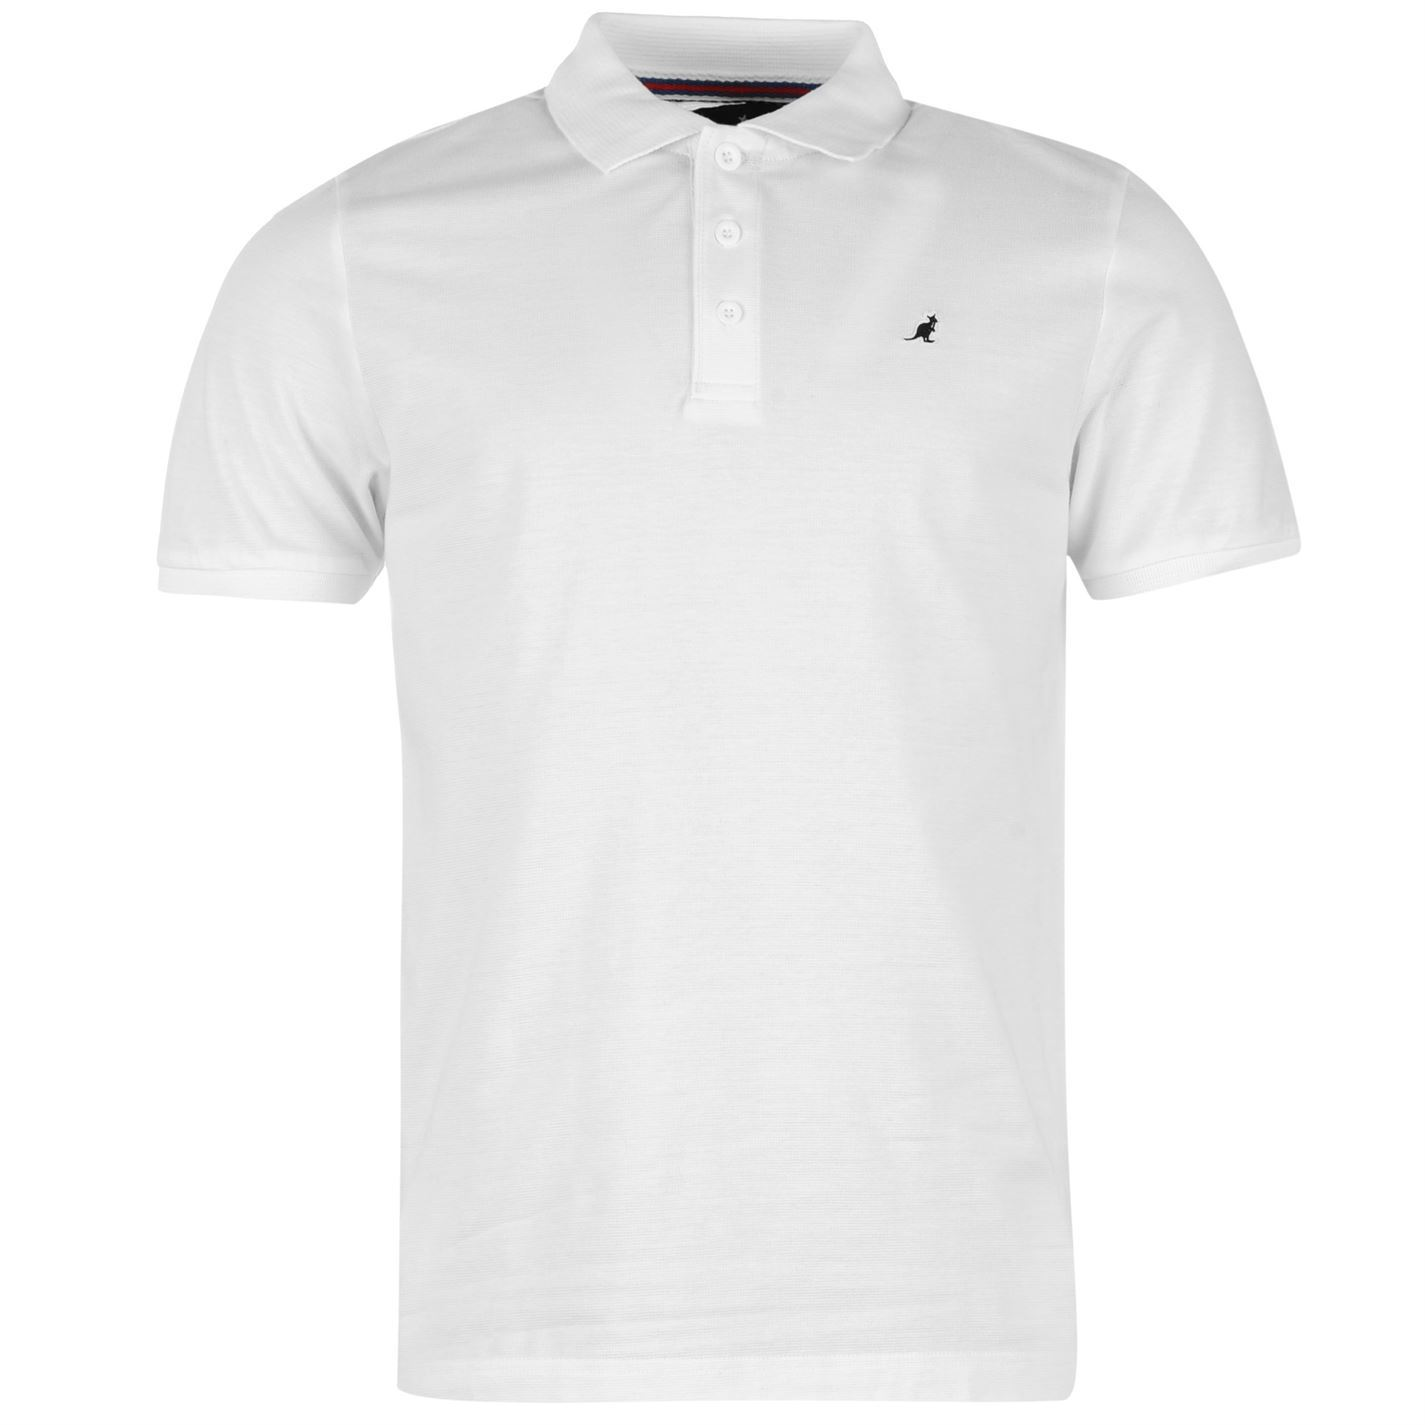 Details about Kangol Brit Fit Polo Shirt Mens White Collared T-Shirt Top Tee 794336c83